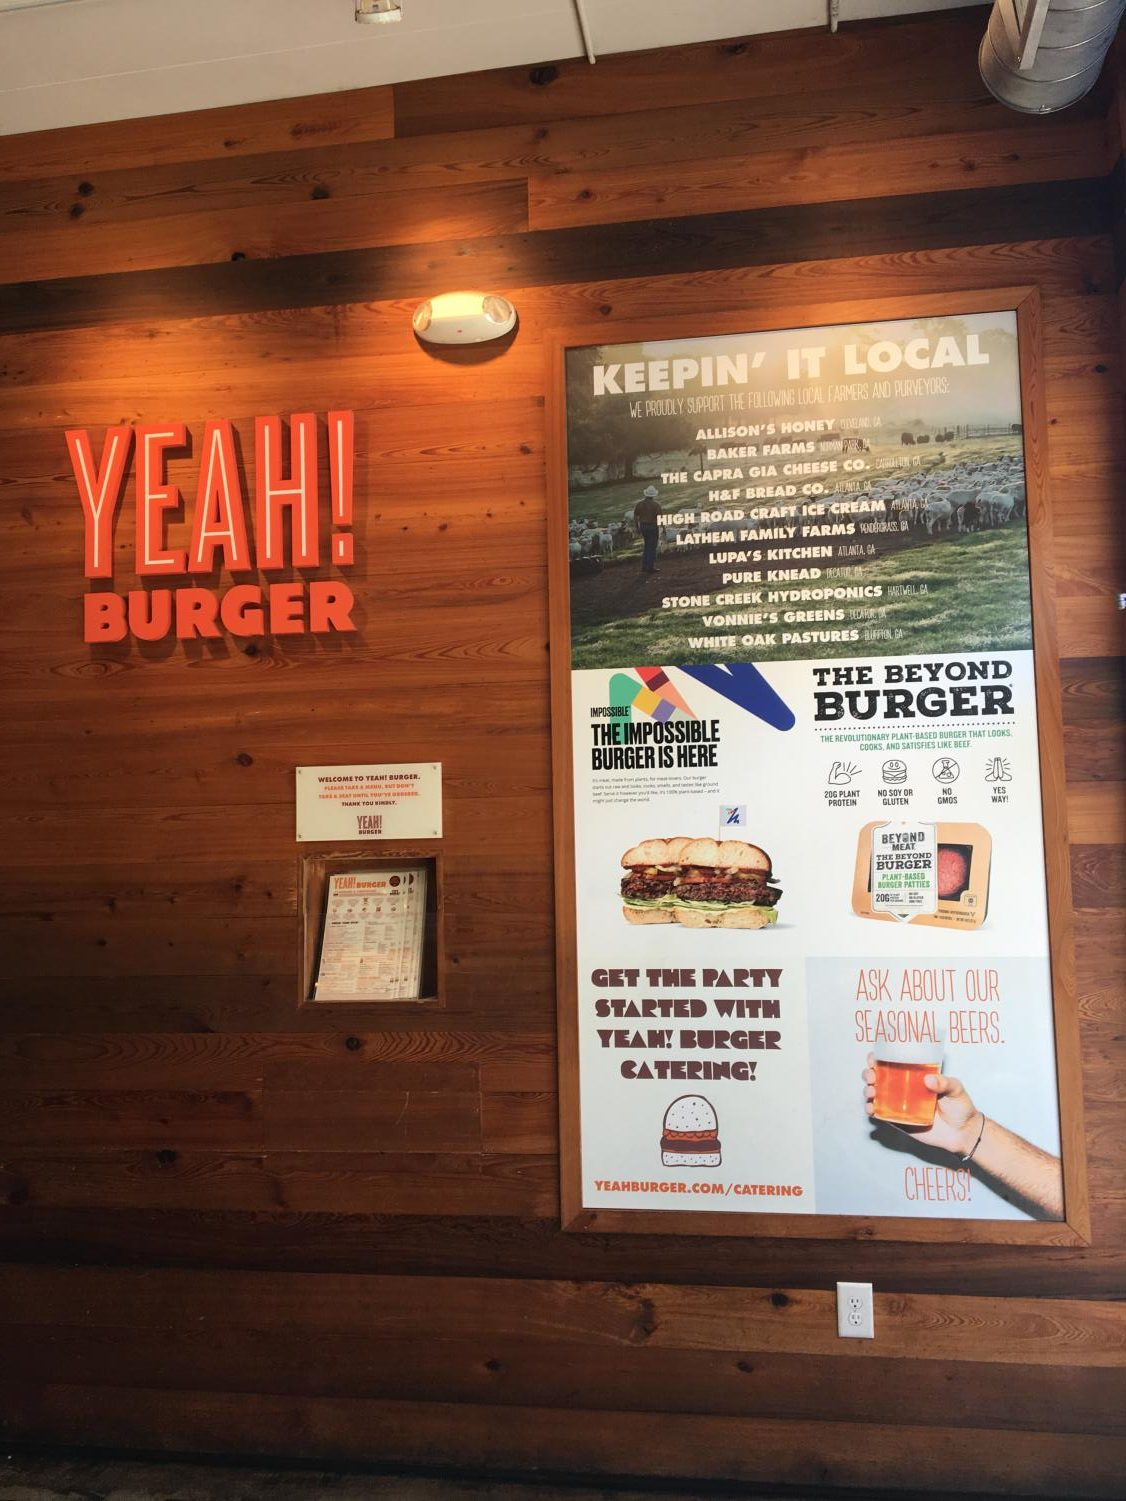 Walking through the front doors of Yeah! Burger in the Virginia Highlands, a poster advertising the Impossible Burger broadcasts its existence on the menu.